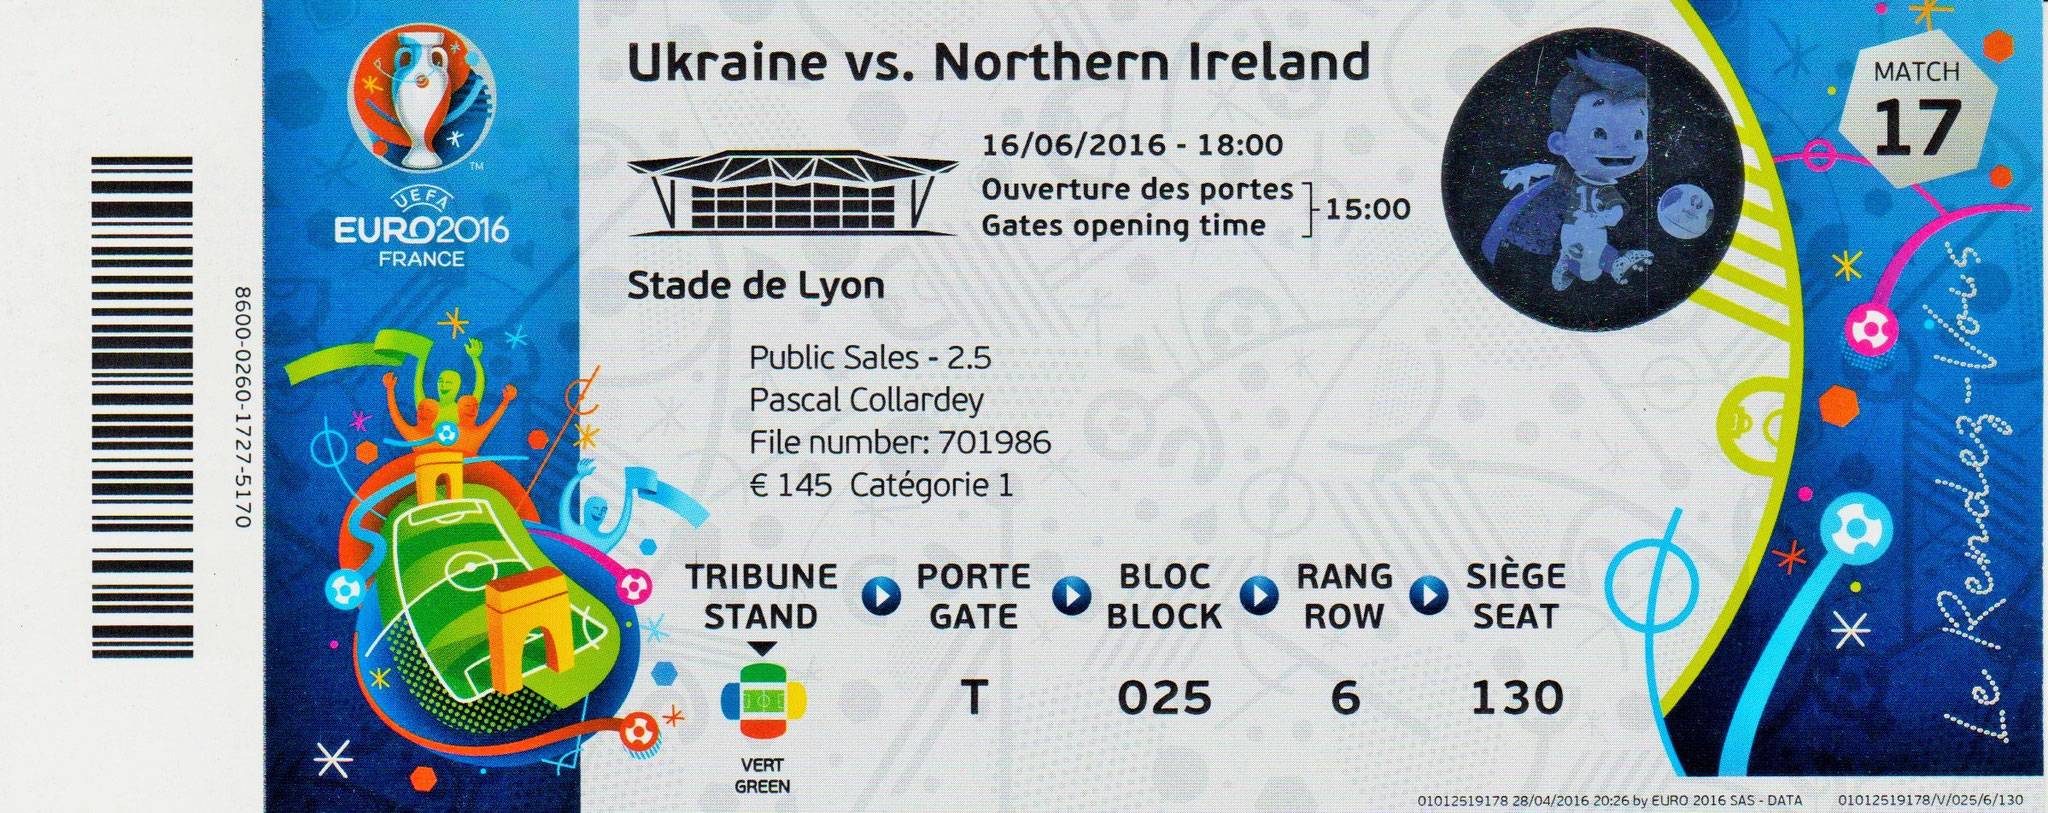 16/06/2016 Lyon : Irlande du Nord  2 - 0  Ukraine > Mc Auley, Mc Ginn  (N. Irl) <